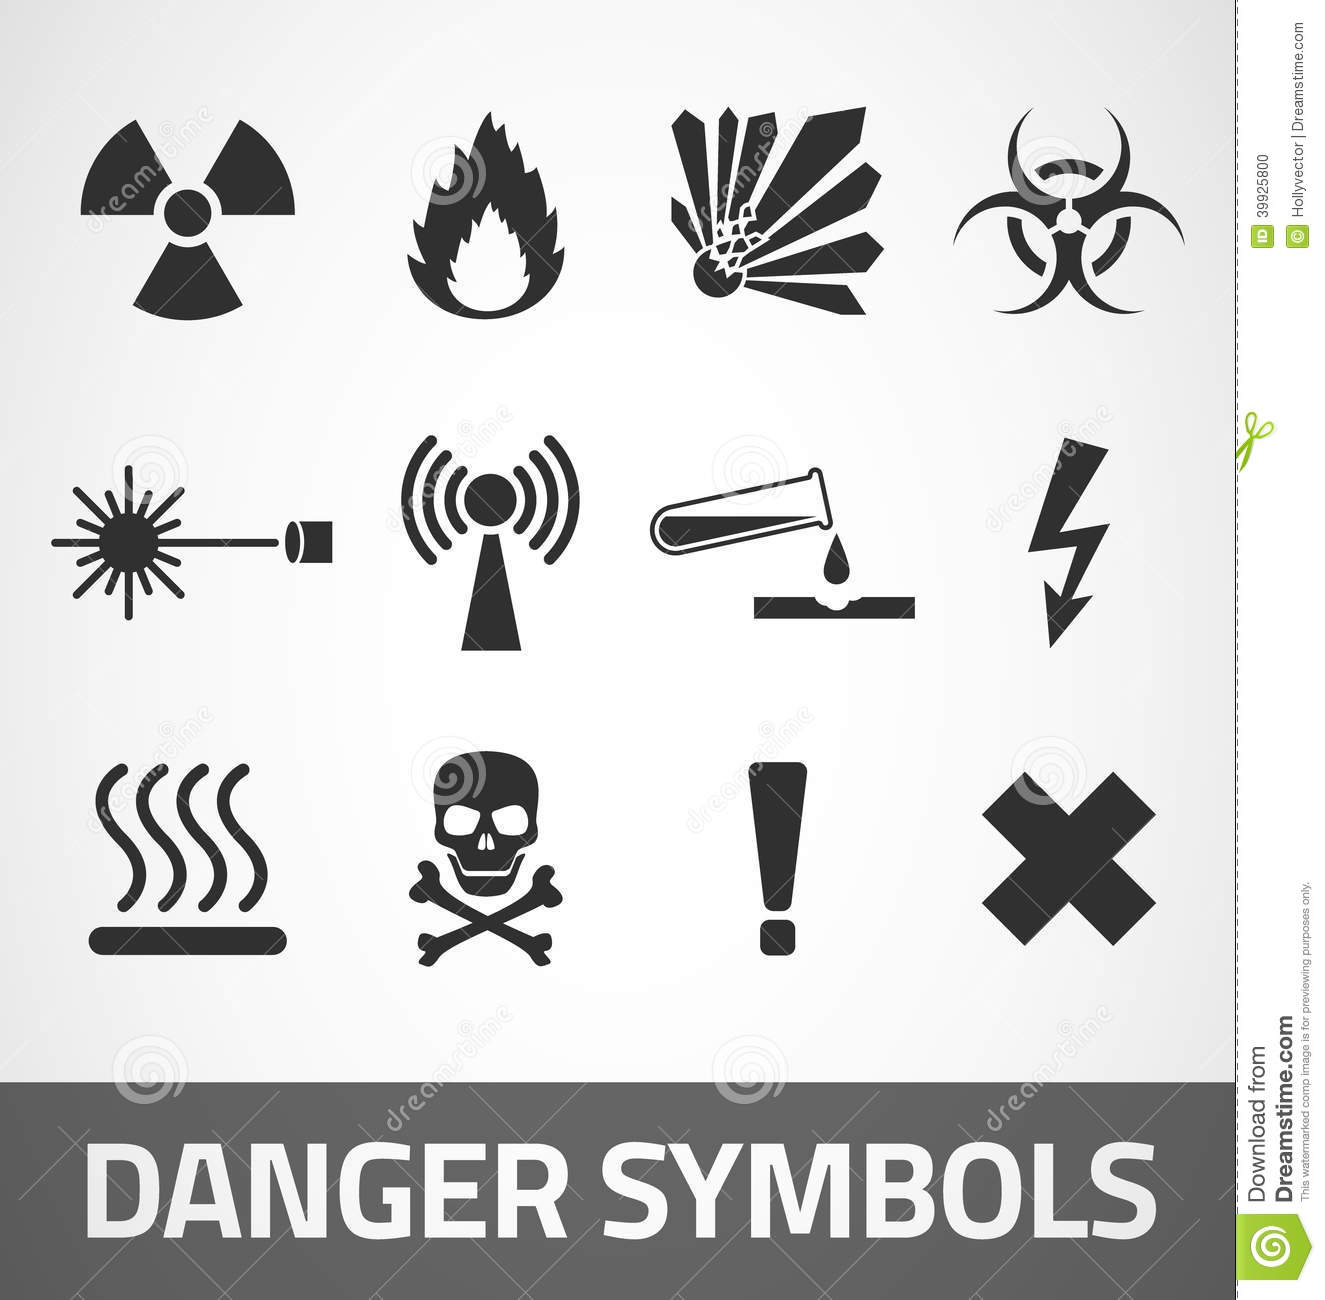 Danger Symbols Stock Vector Illustration Of Icon Flame 39925800